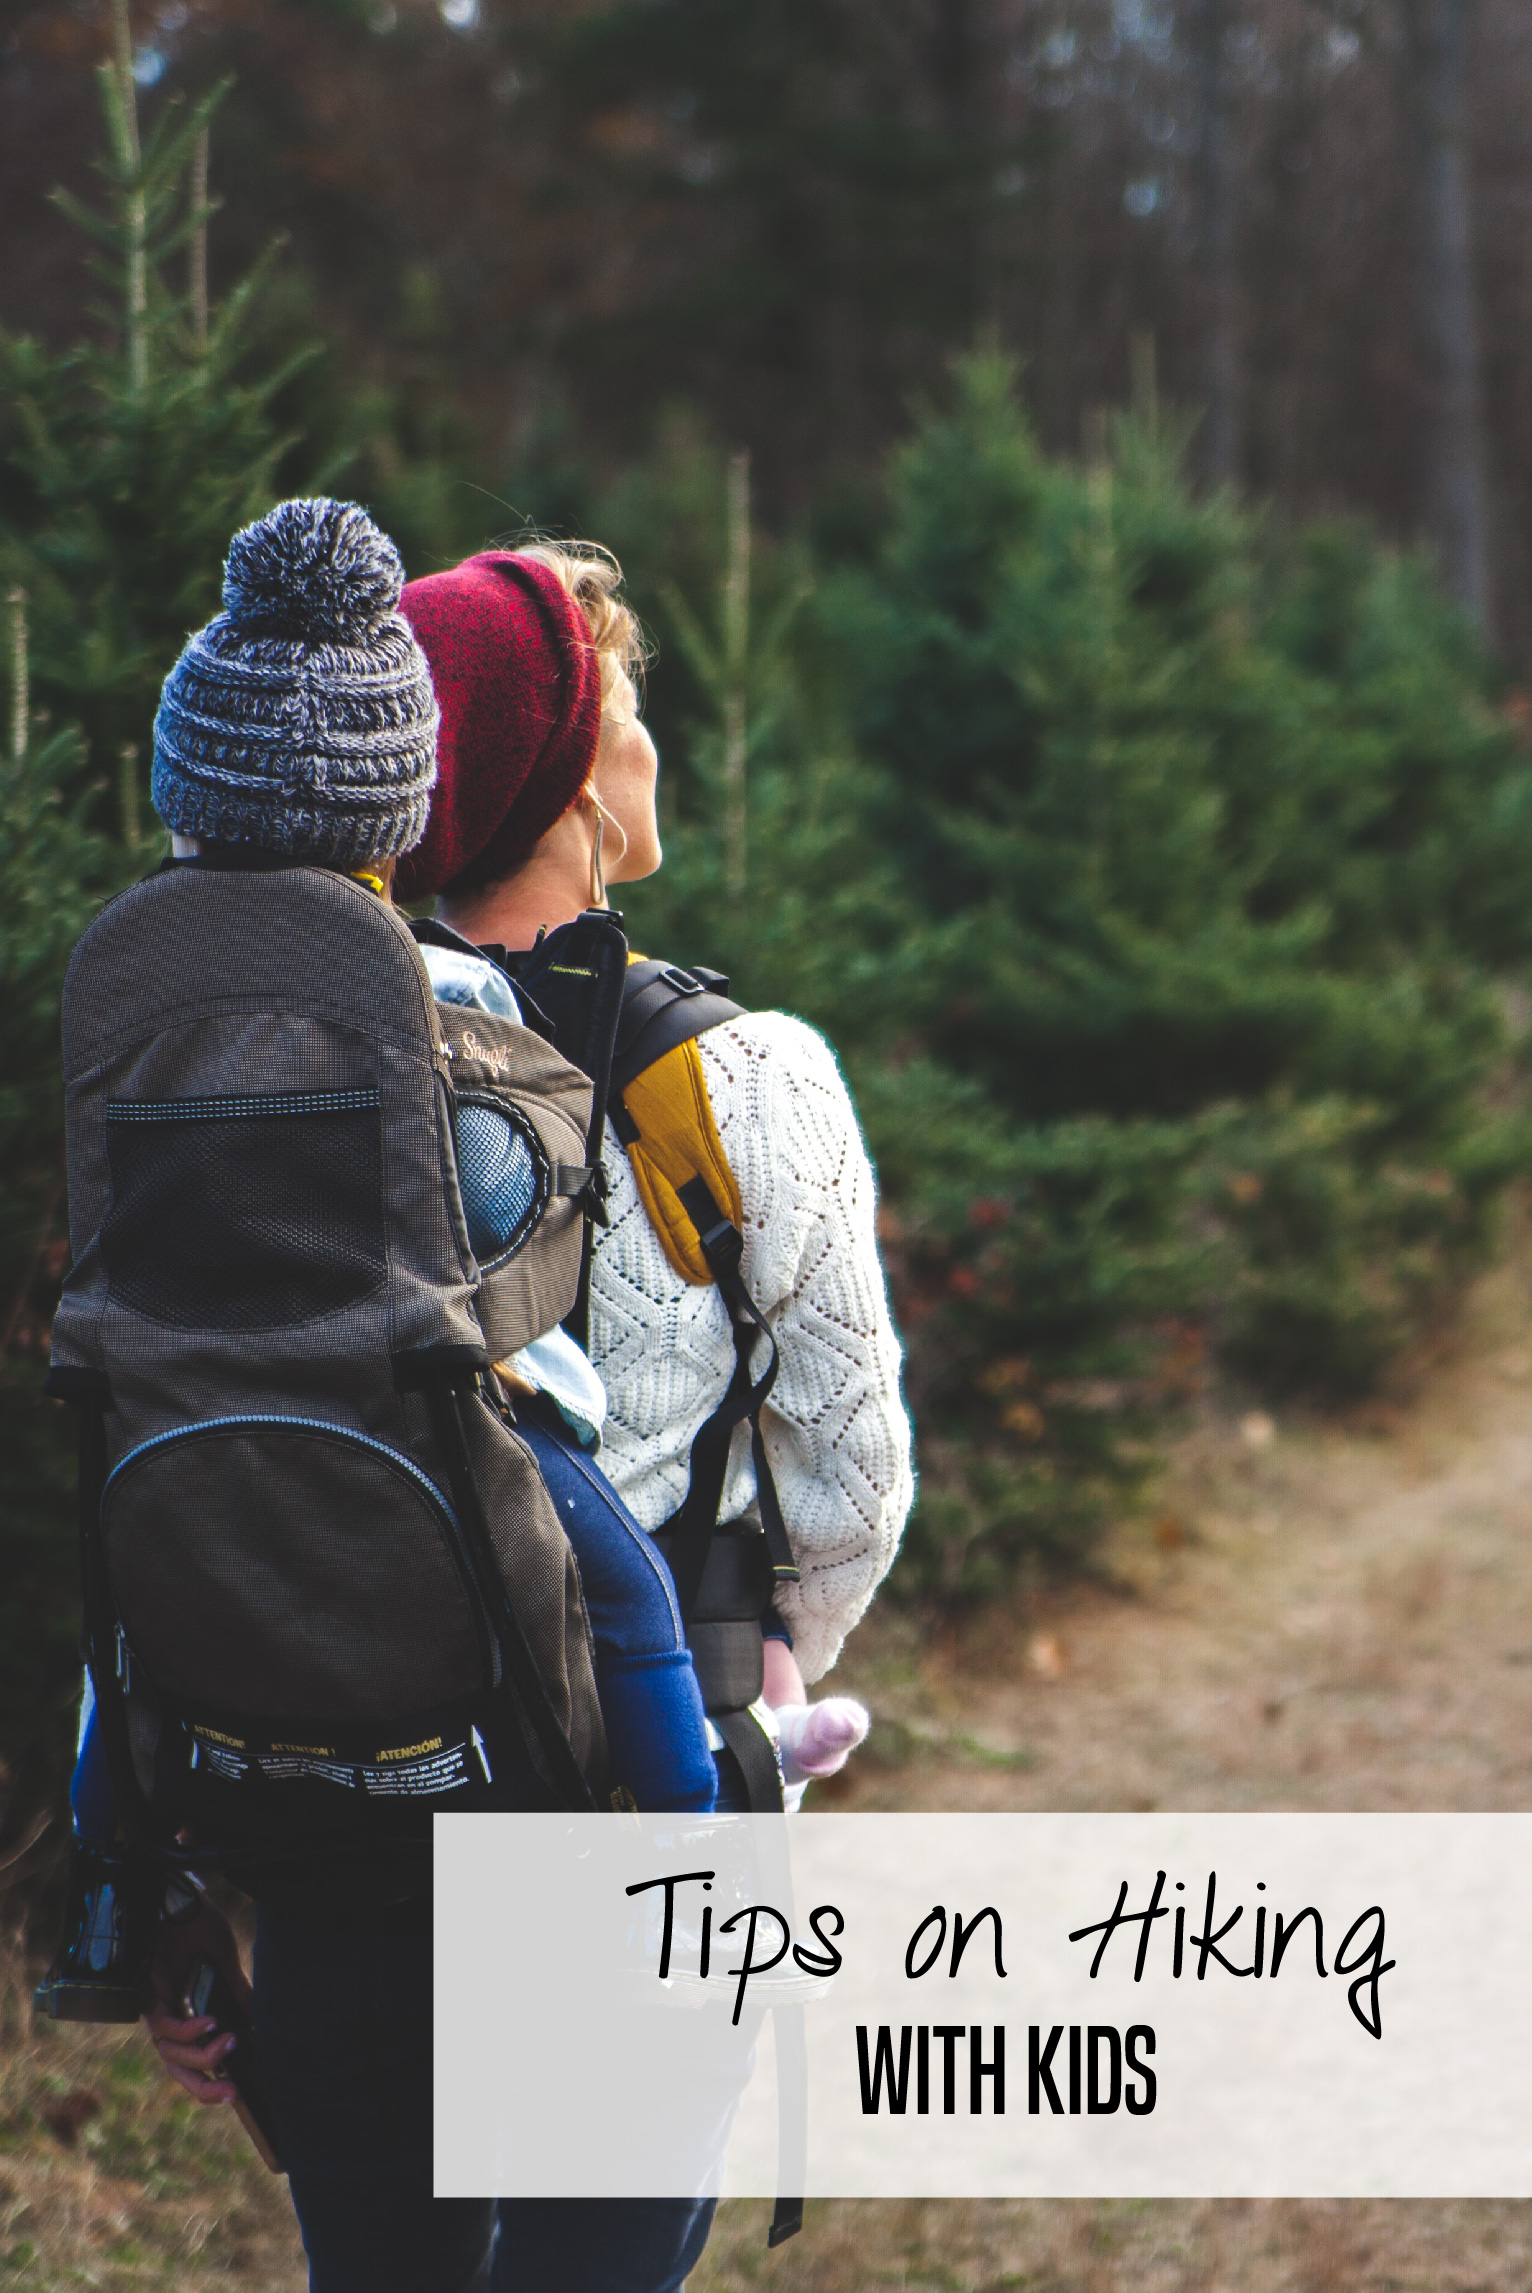 Tips for hiking with kids #hiking #getoutside #familytravel